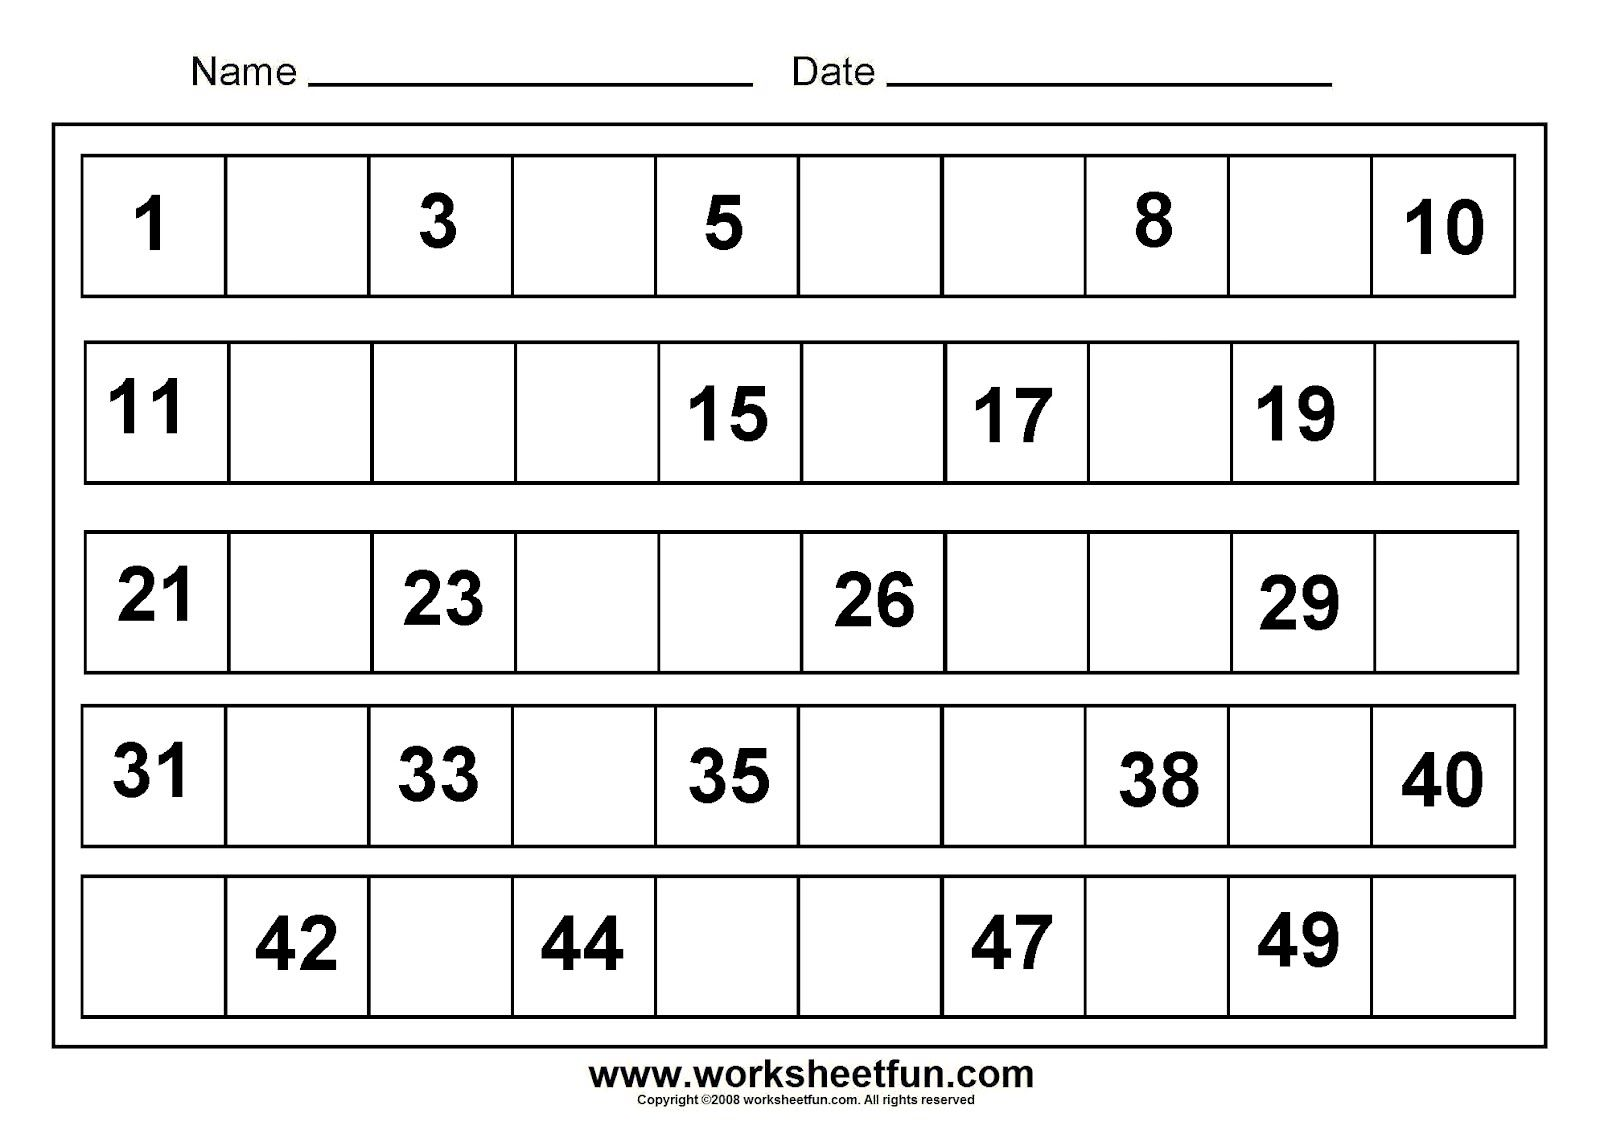 math worksheet : 1000 images about work sheets on pinterest  math worksheets  : Math Worksheet For Kindergarten